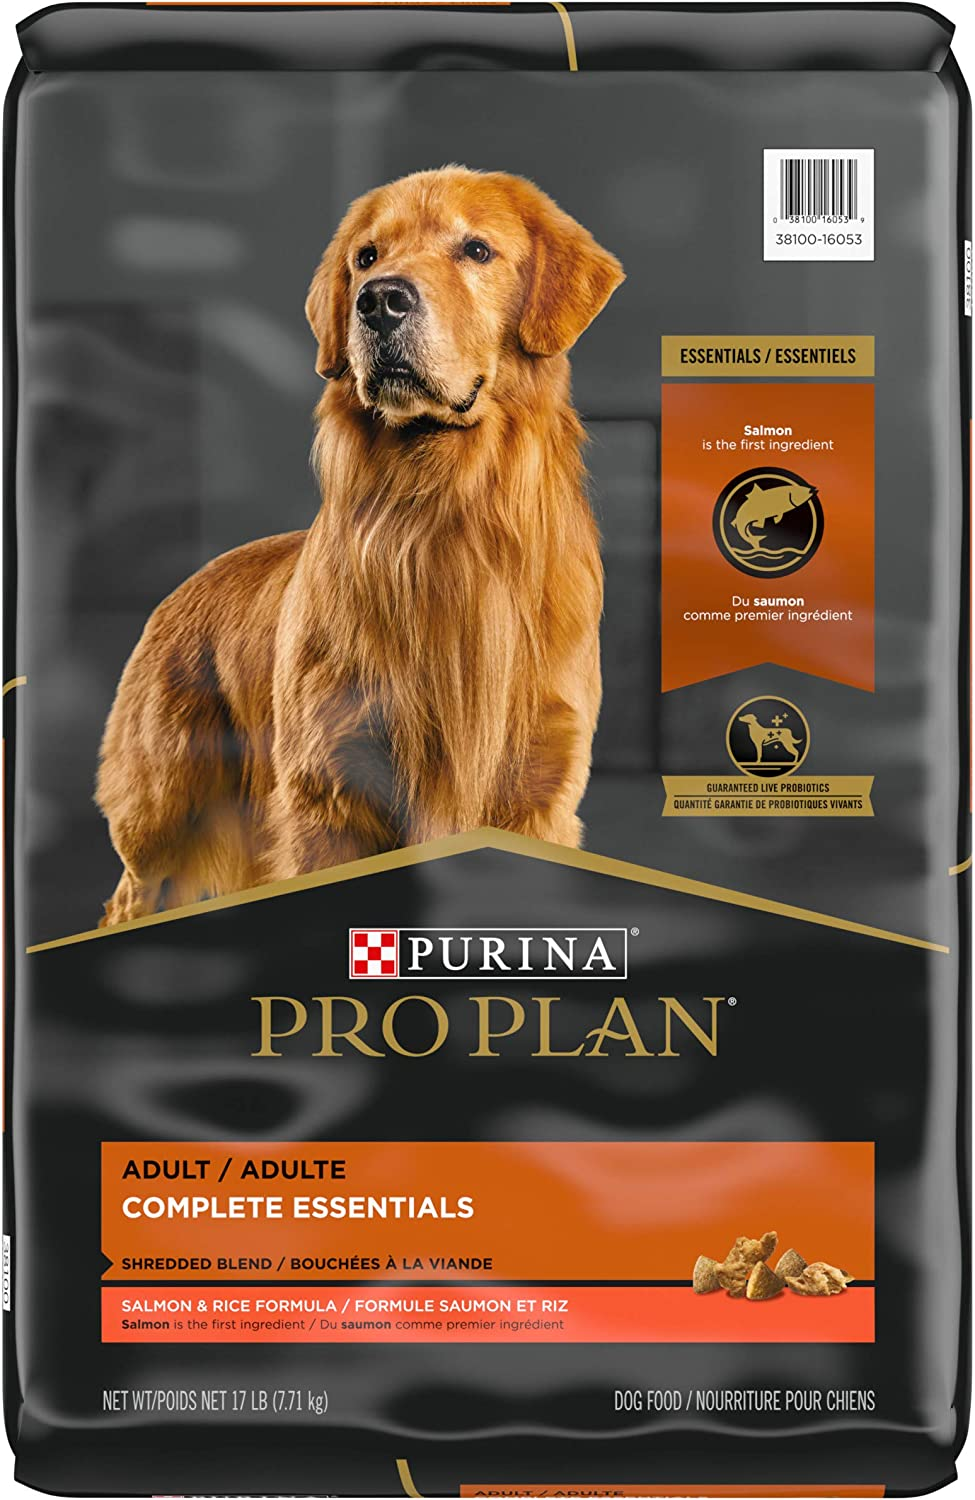 Purina Pro Plan With Probiotics, High Protein Dry Dog Food, Shredded Blend Salmon & Rice Formula - 17 lb. Bag